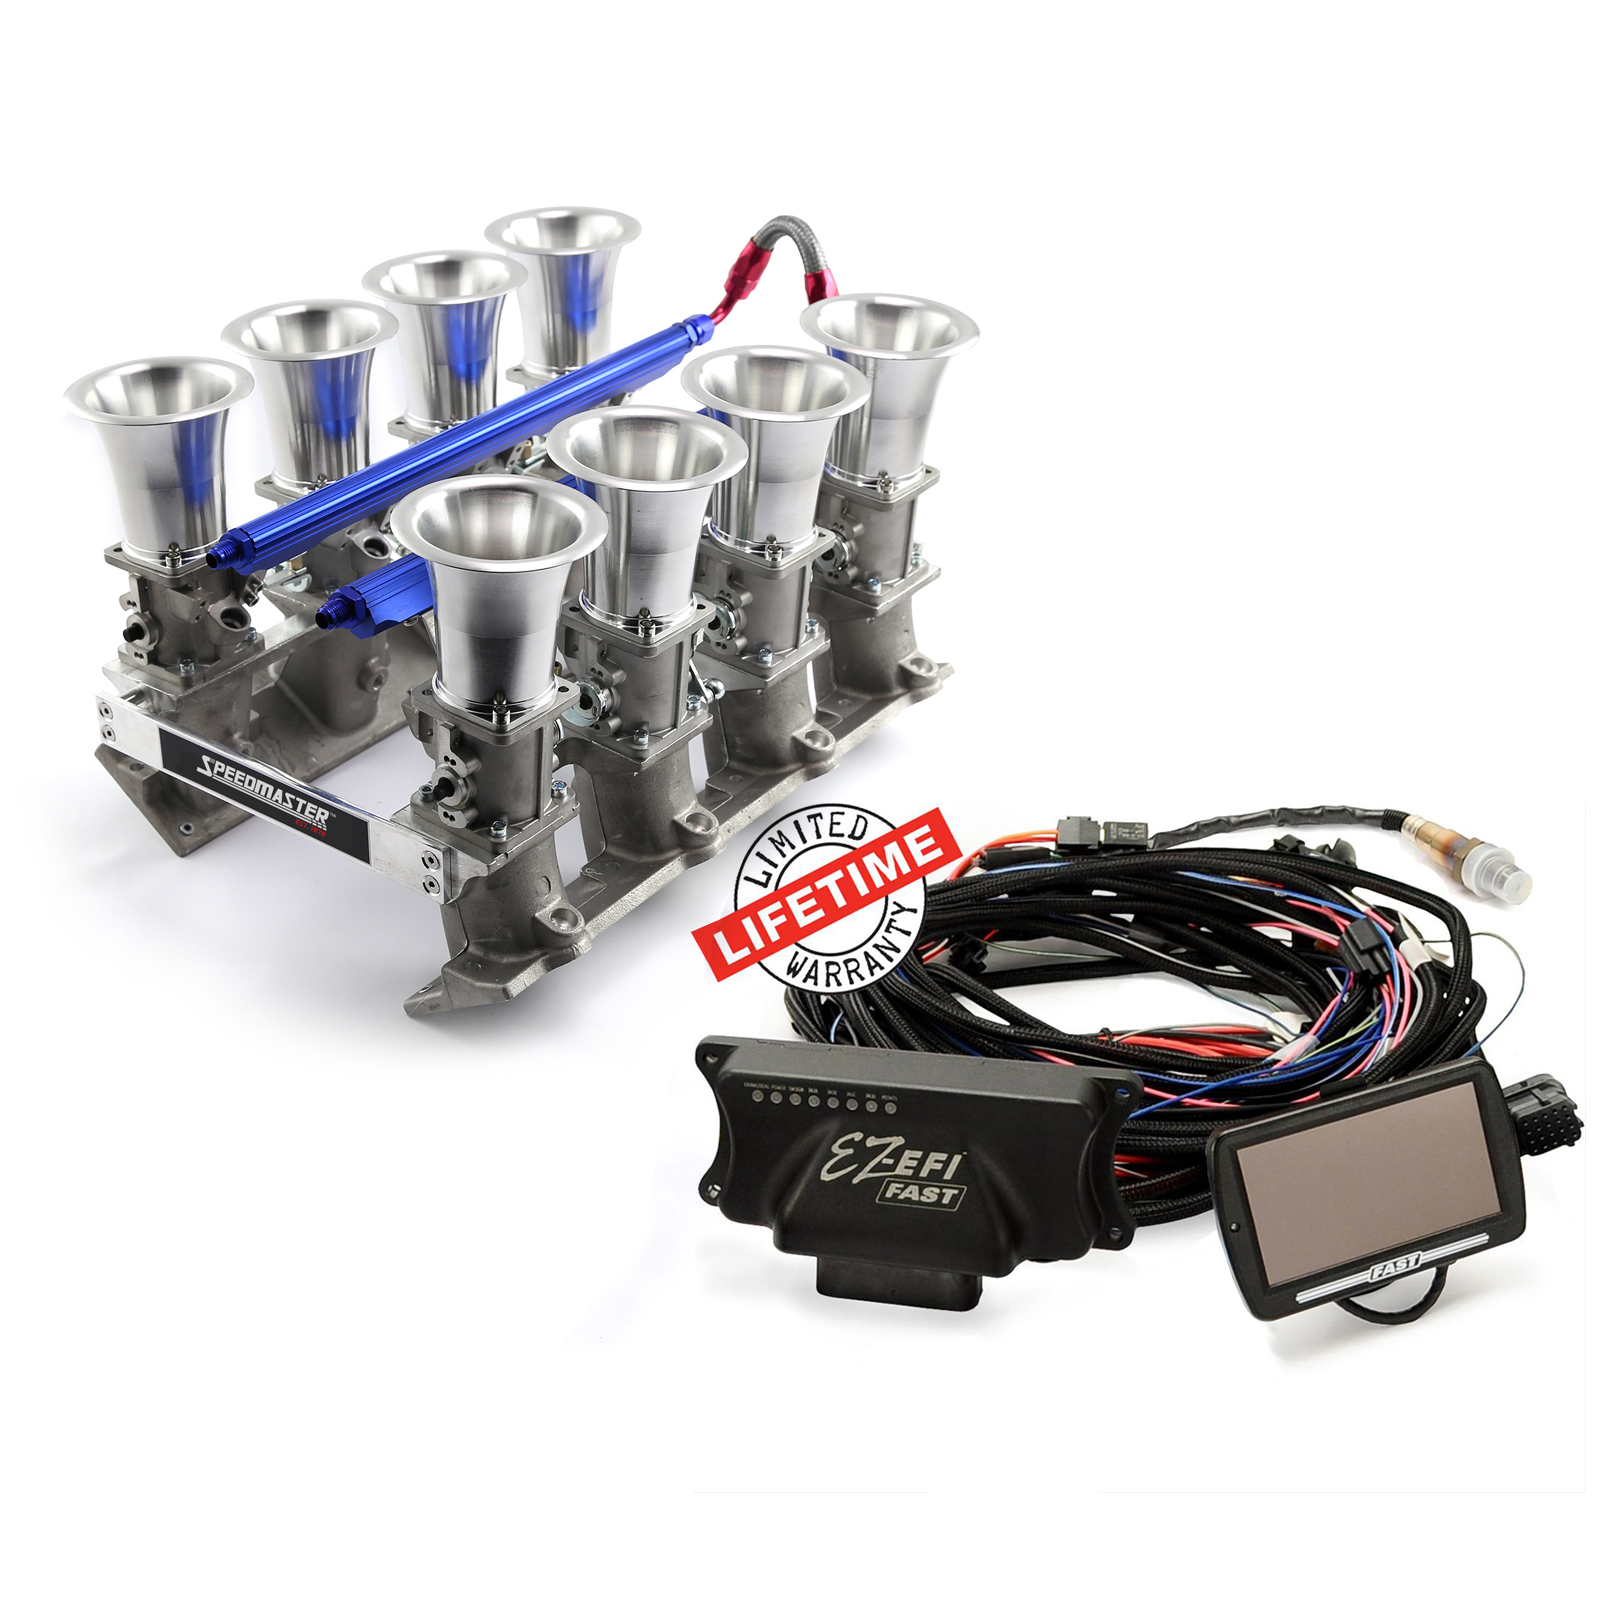 Chevy GM LS3 EFI Manifold & FAST EZ-EFI 2.0 Self-Tuning Fuel Injection System